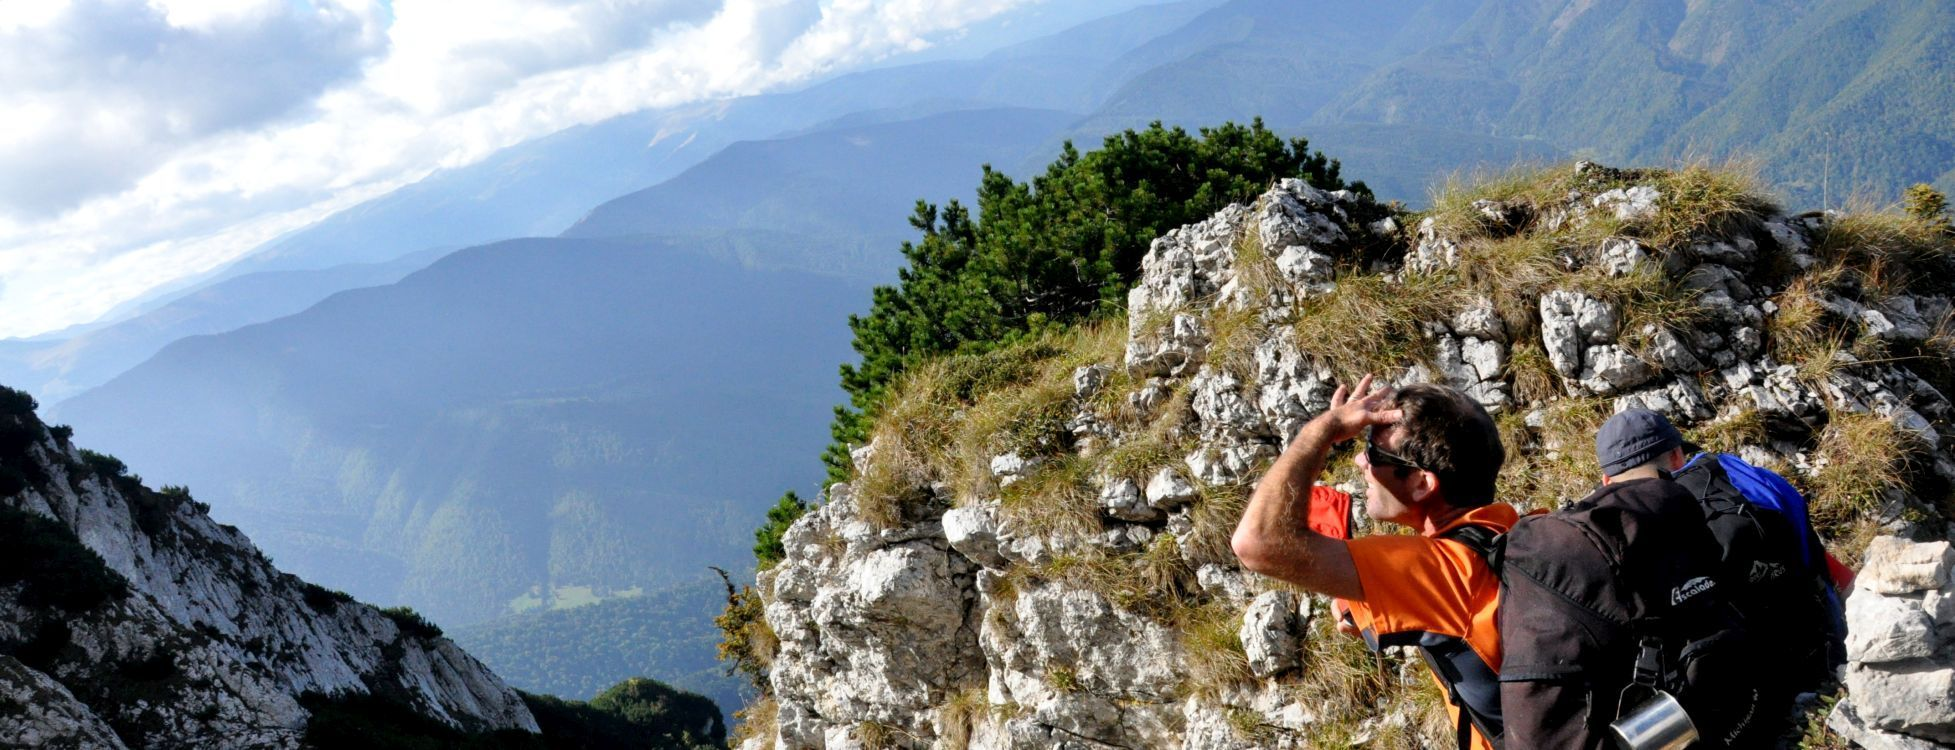 Active trekking tour in National Park Piatra Craiului - 1 day